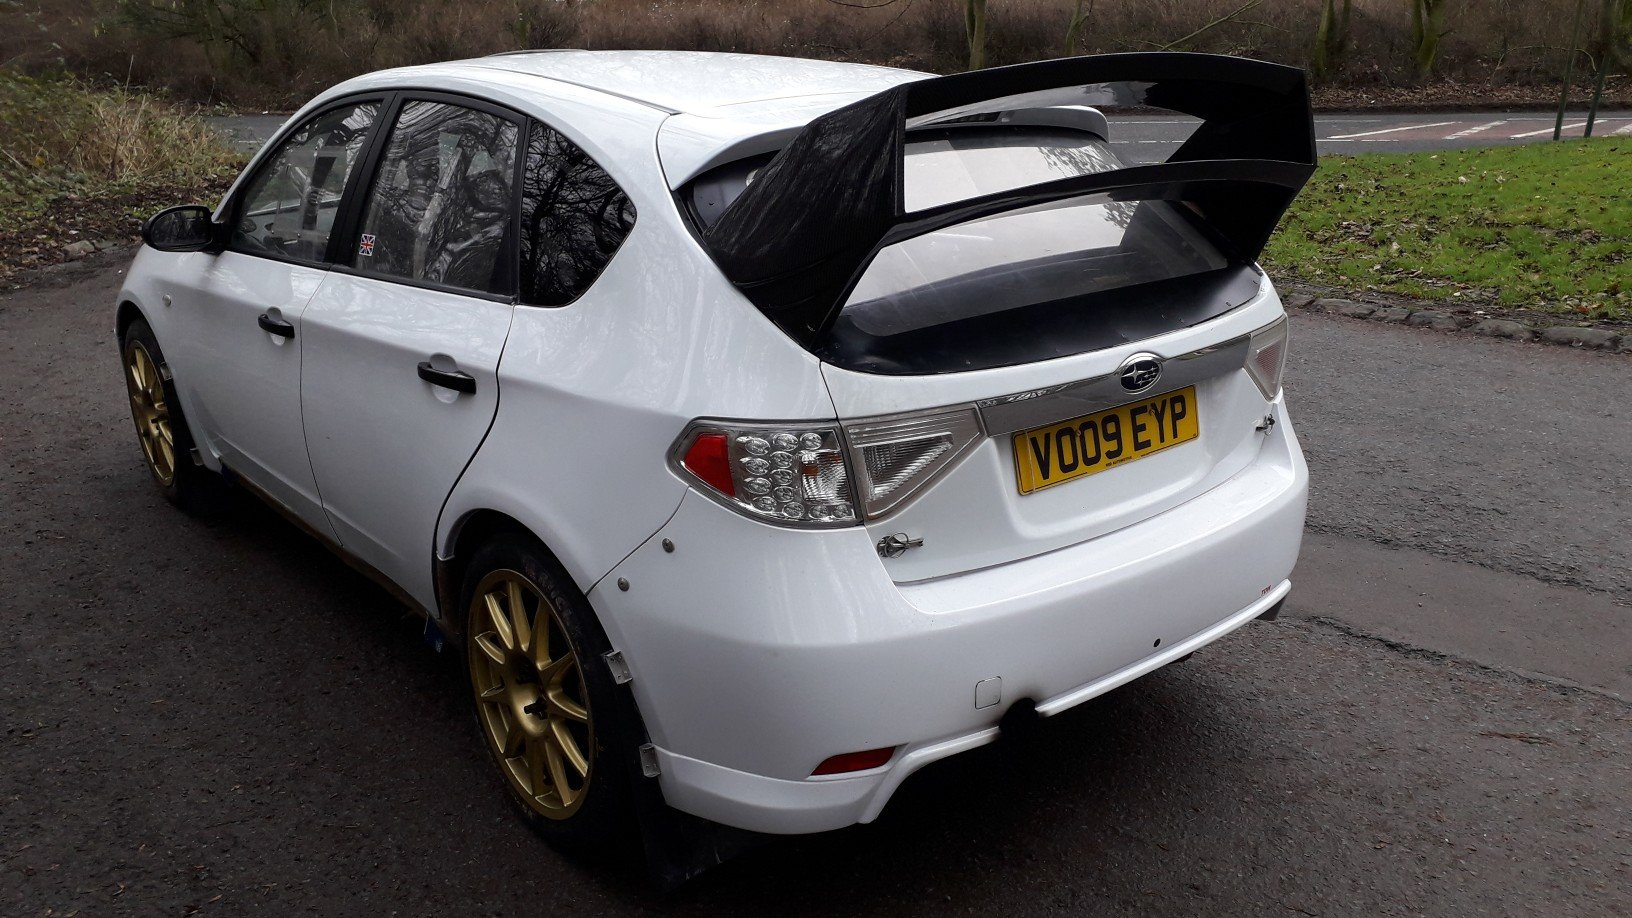 2009 subaru impreza n14 rally car full msa legal ready to rally  For Sale (picture 4 of 6)